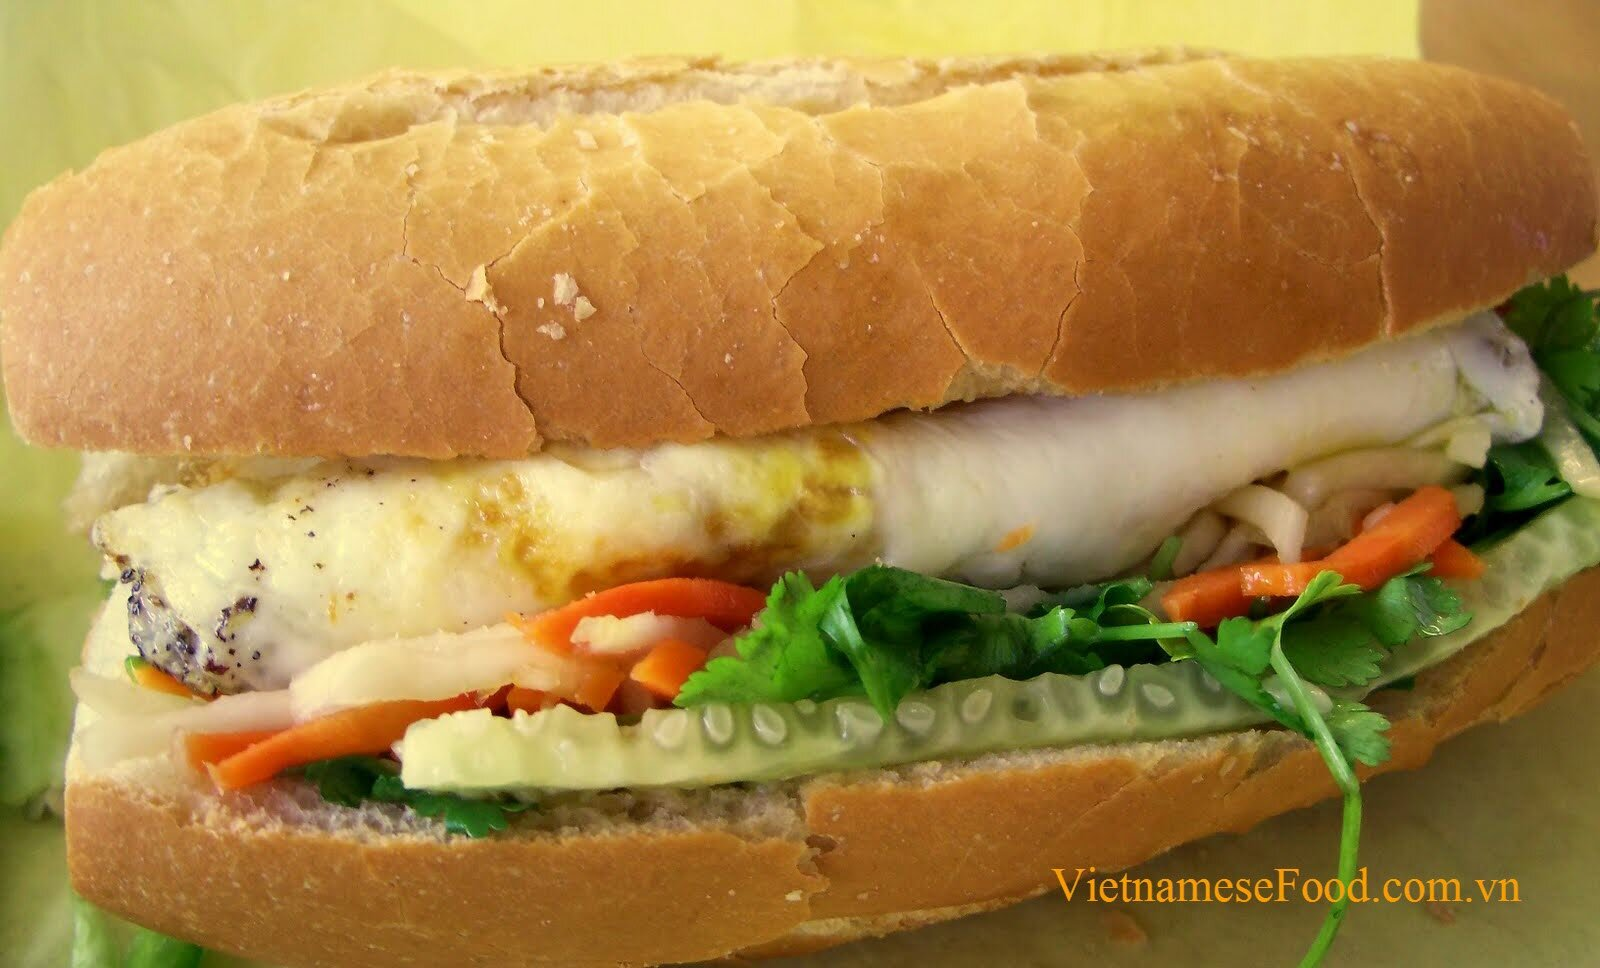 shredded-pork-skin-with-fried-egg-and-bread-recipe-banh-mi-op-la-bi